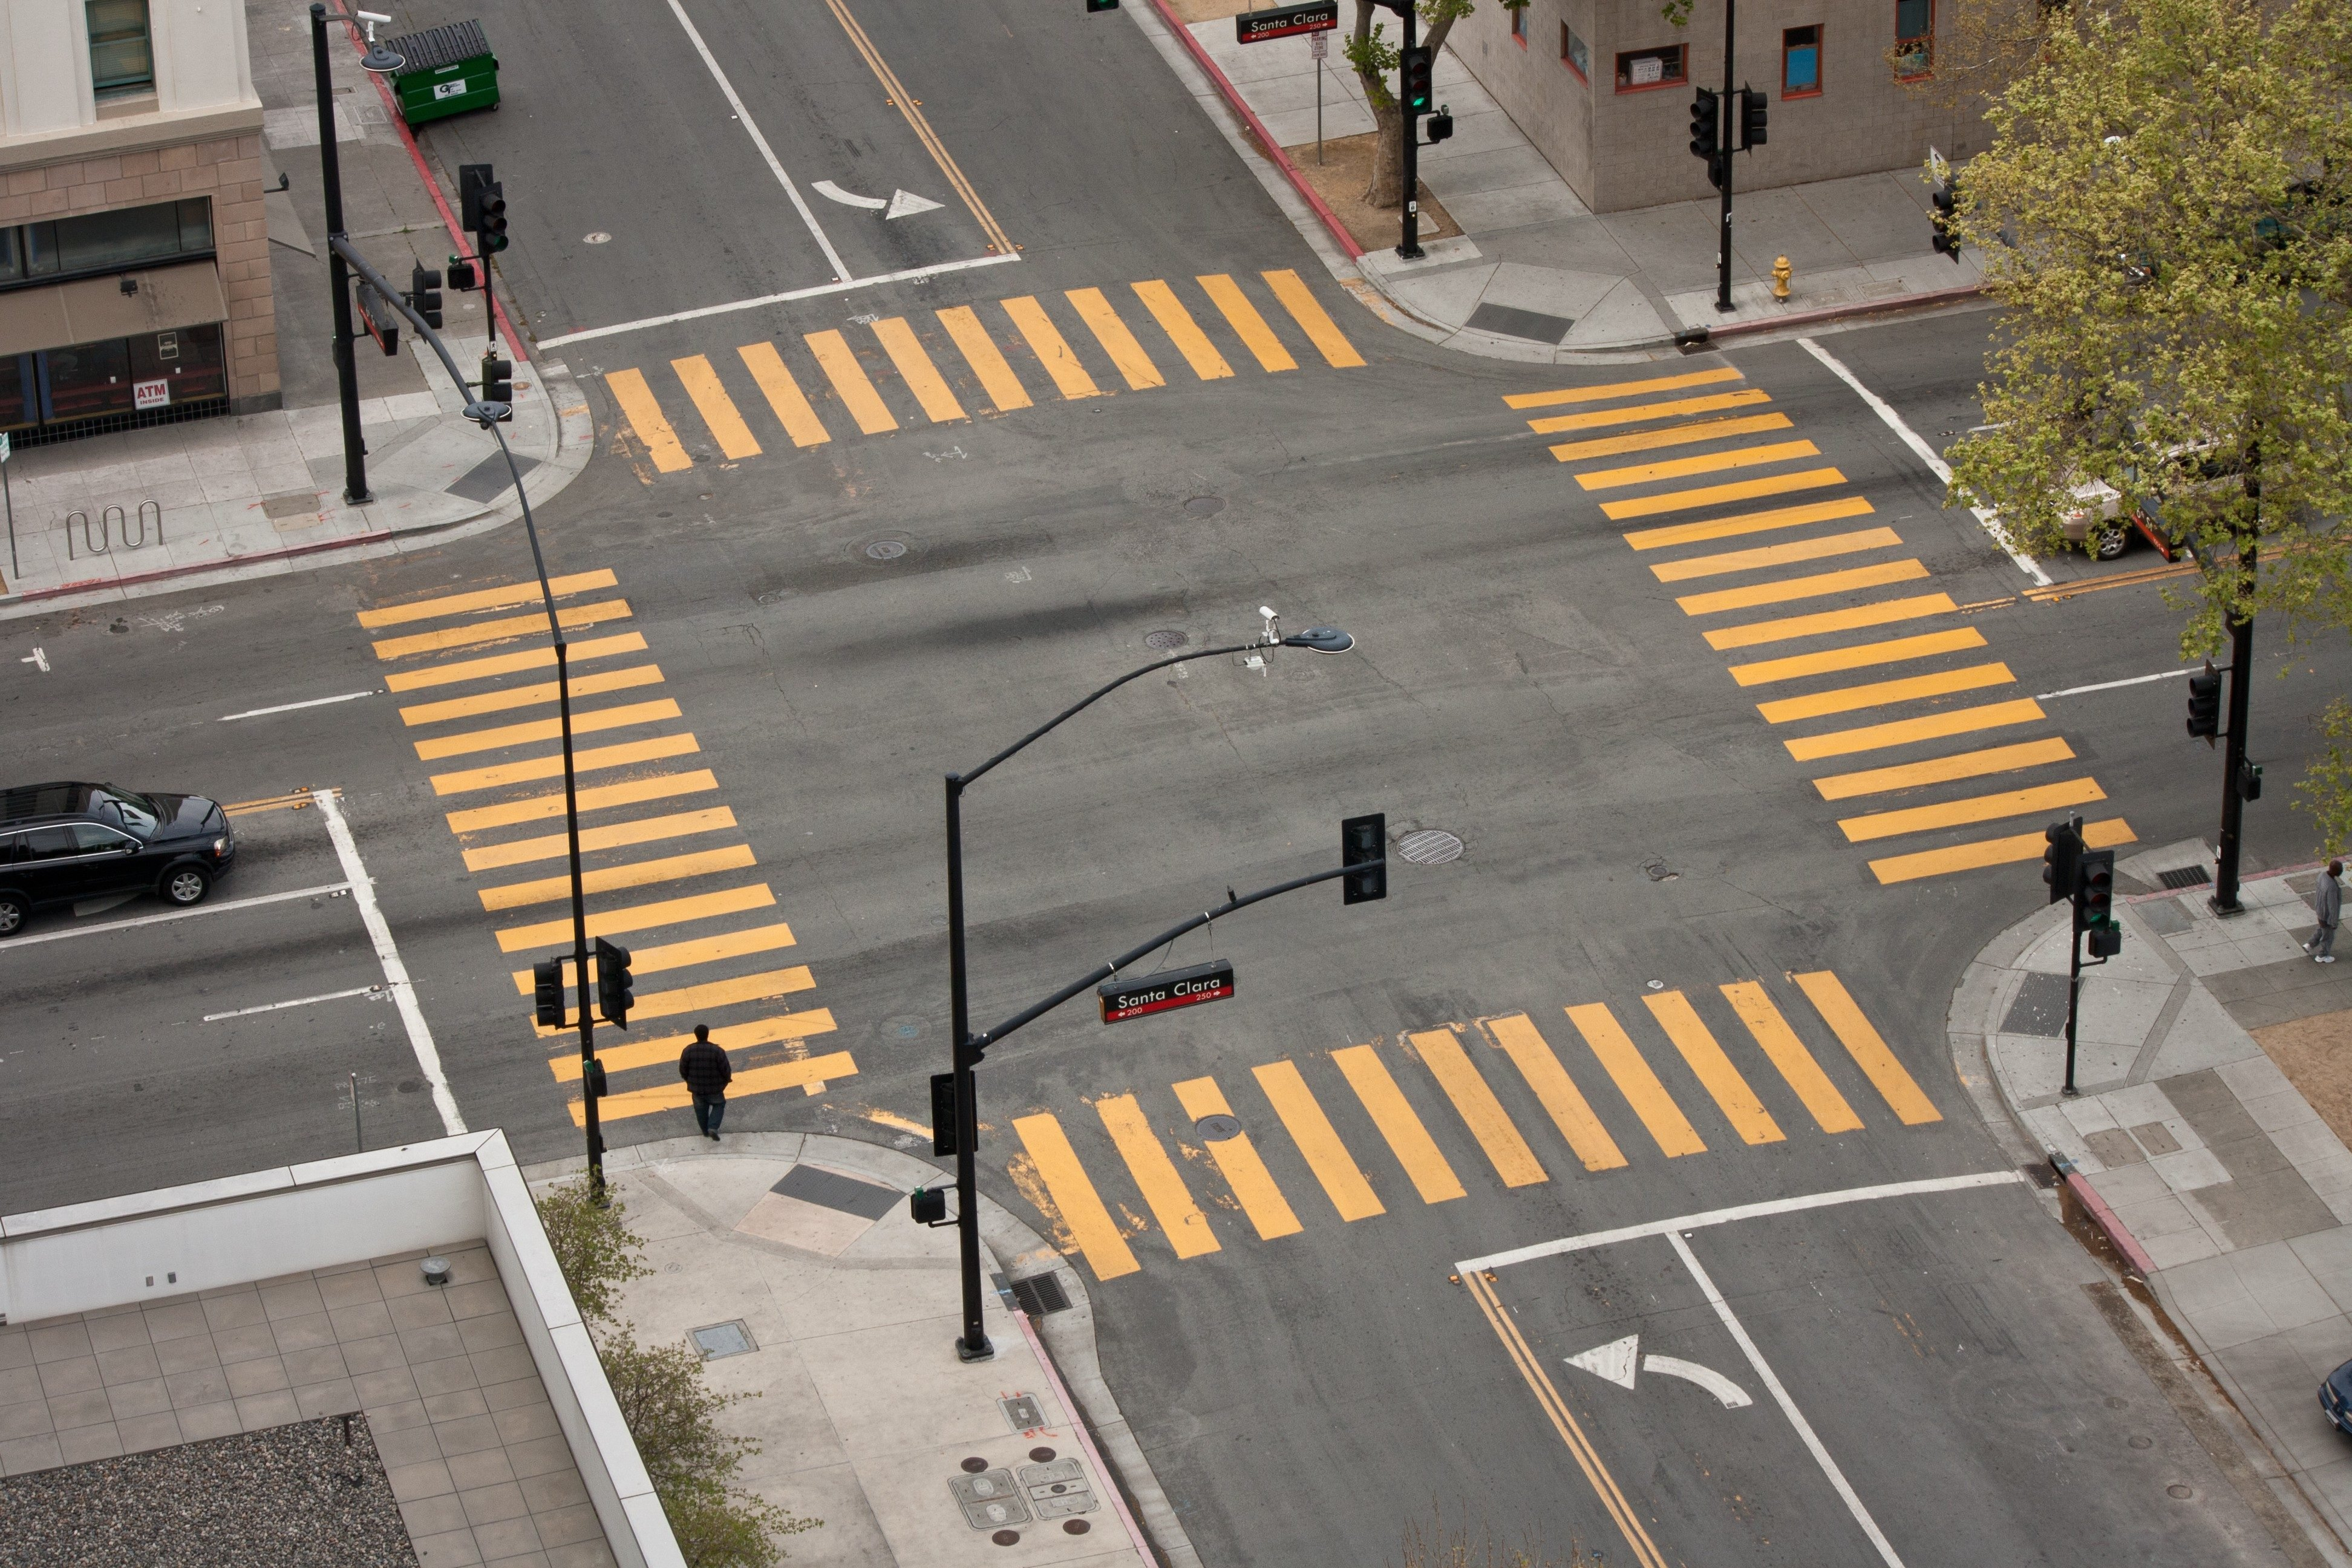 A high angle view of an almost empty street intersection, with yellow cross walk markings, traffic signal lights, and curb cuts, in San Jose, California.